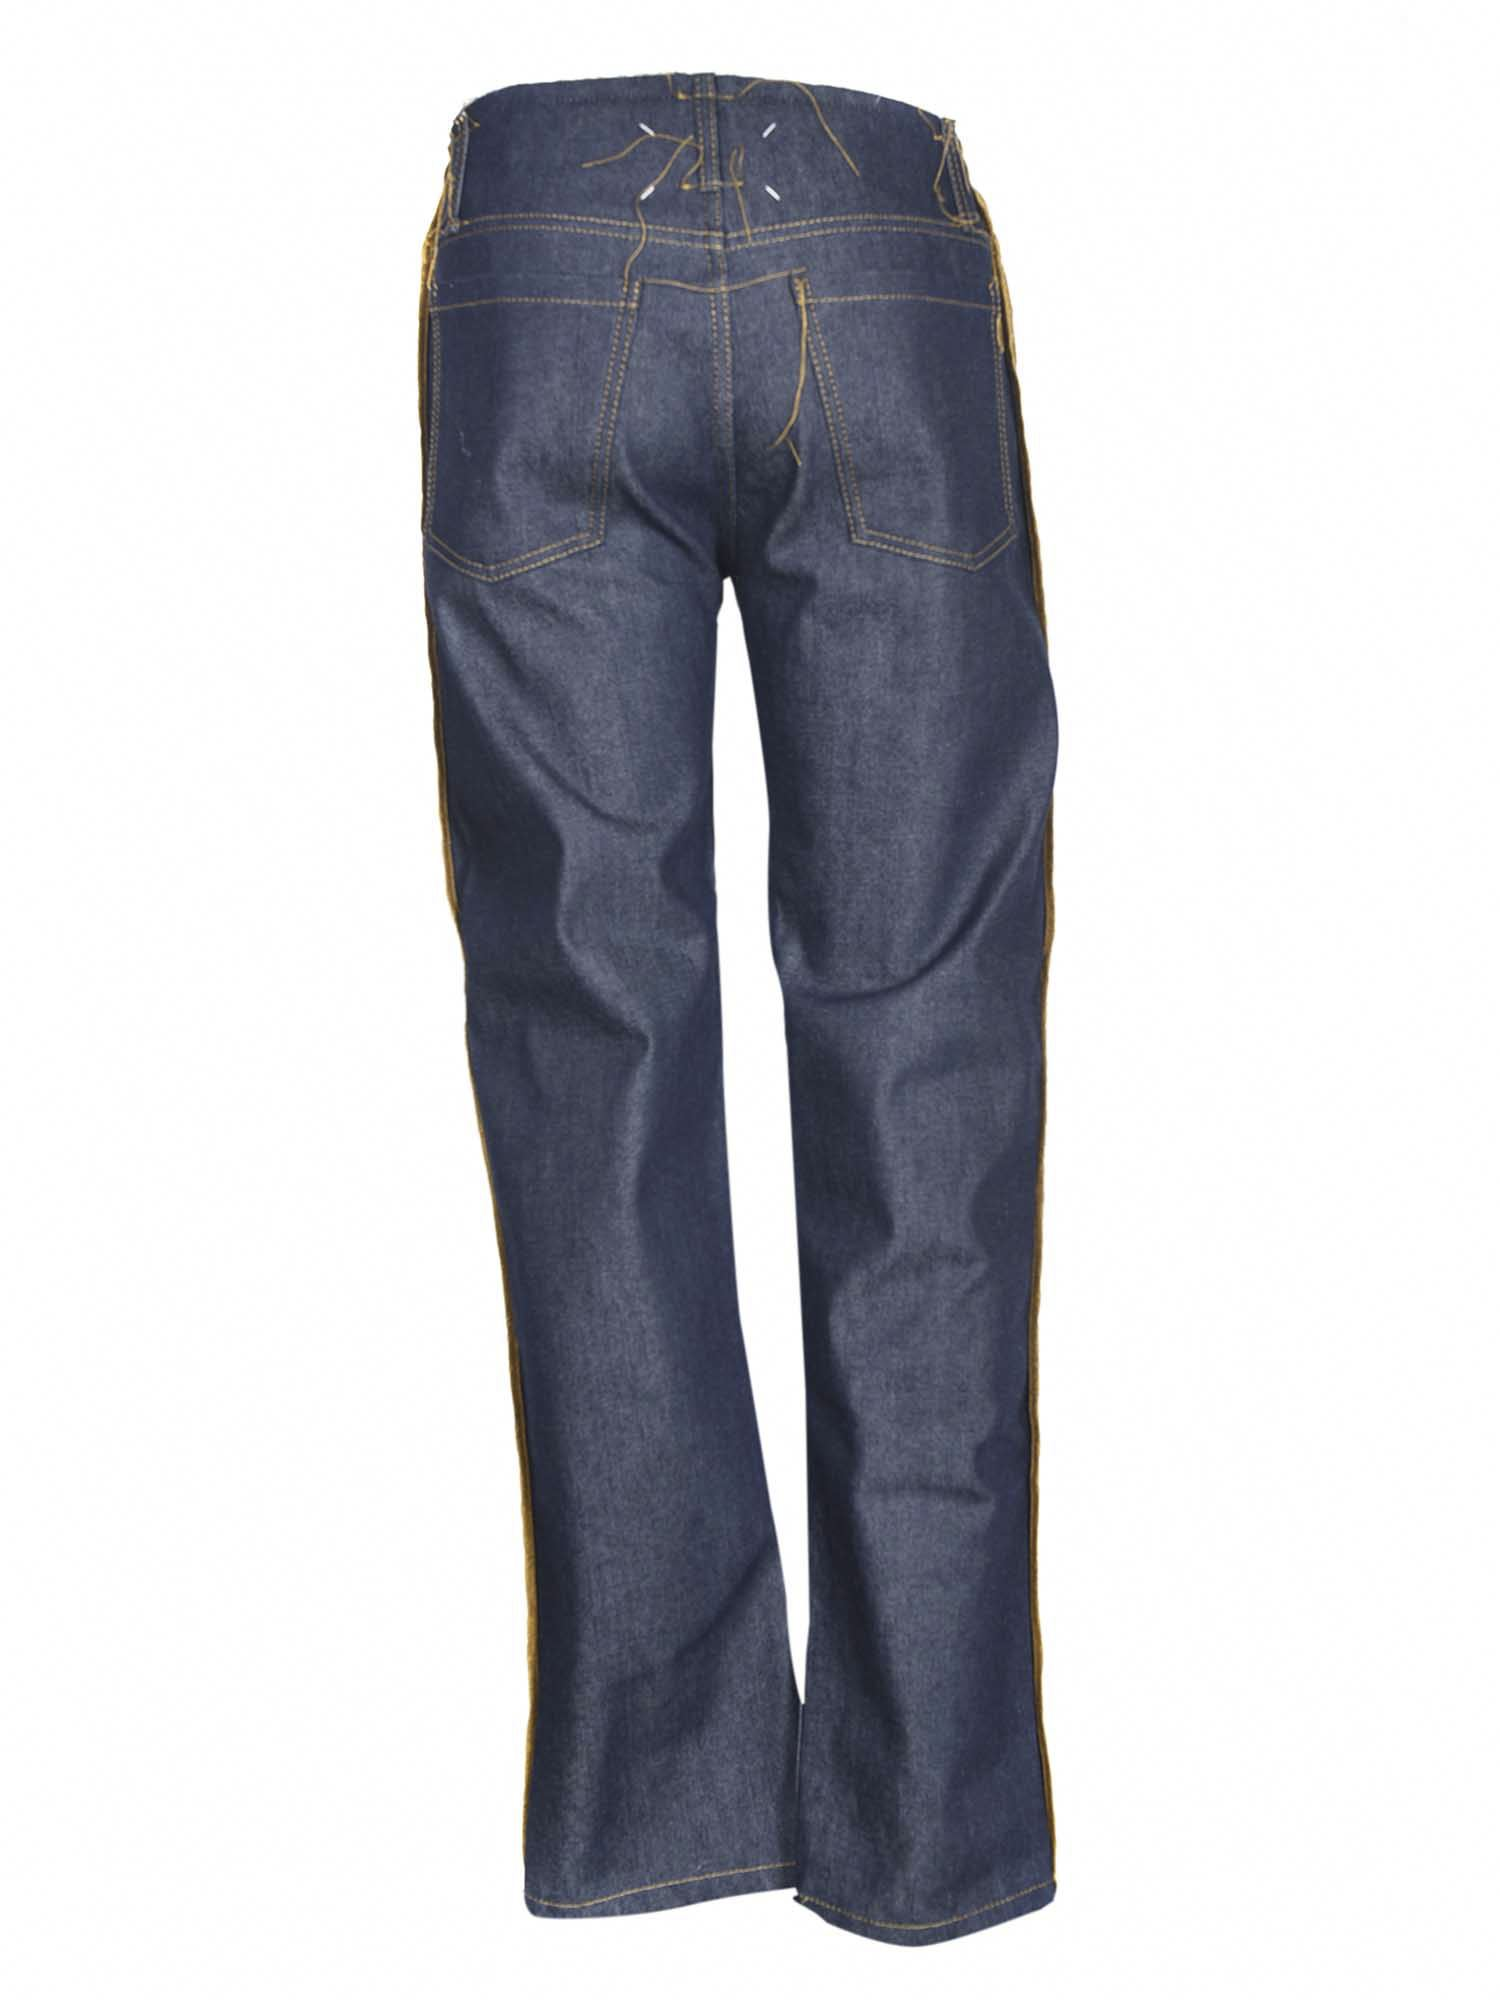 Maison Margiela SIDE RIBBONS JEANS IN BLUE